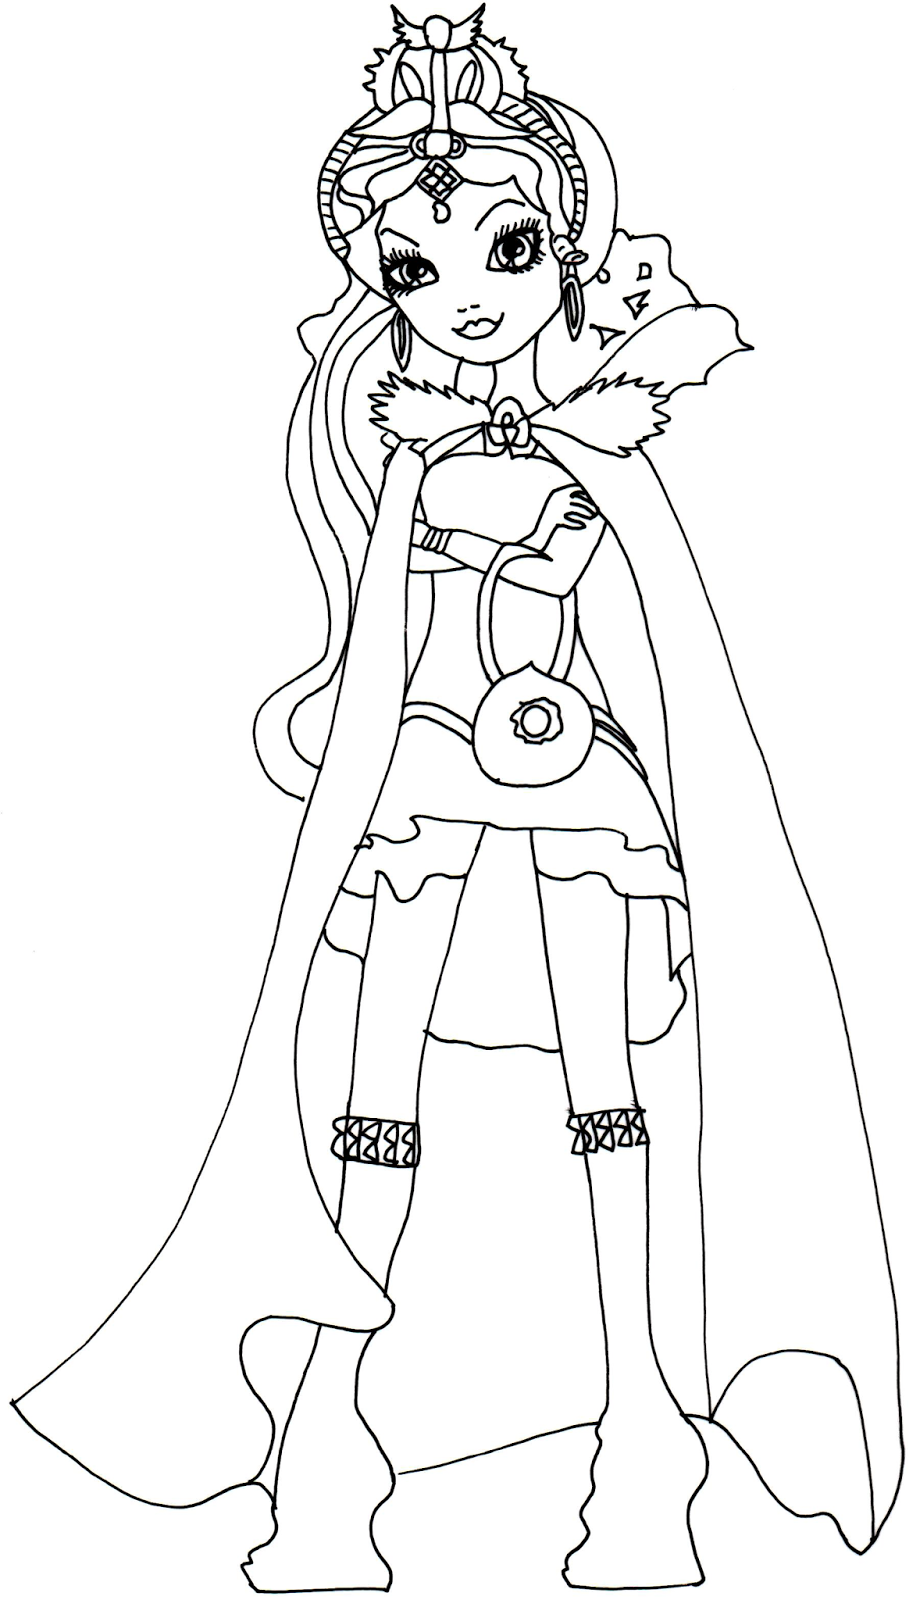 Free Printable Ever After High Coloring Pages: Raven Queen